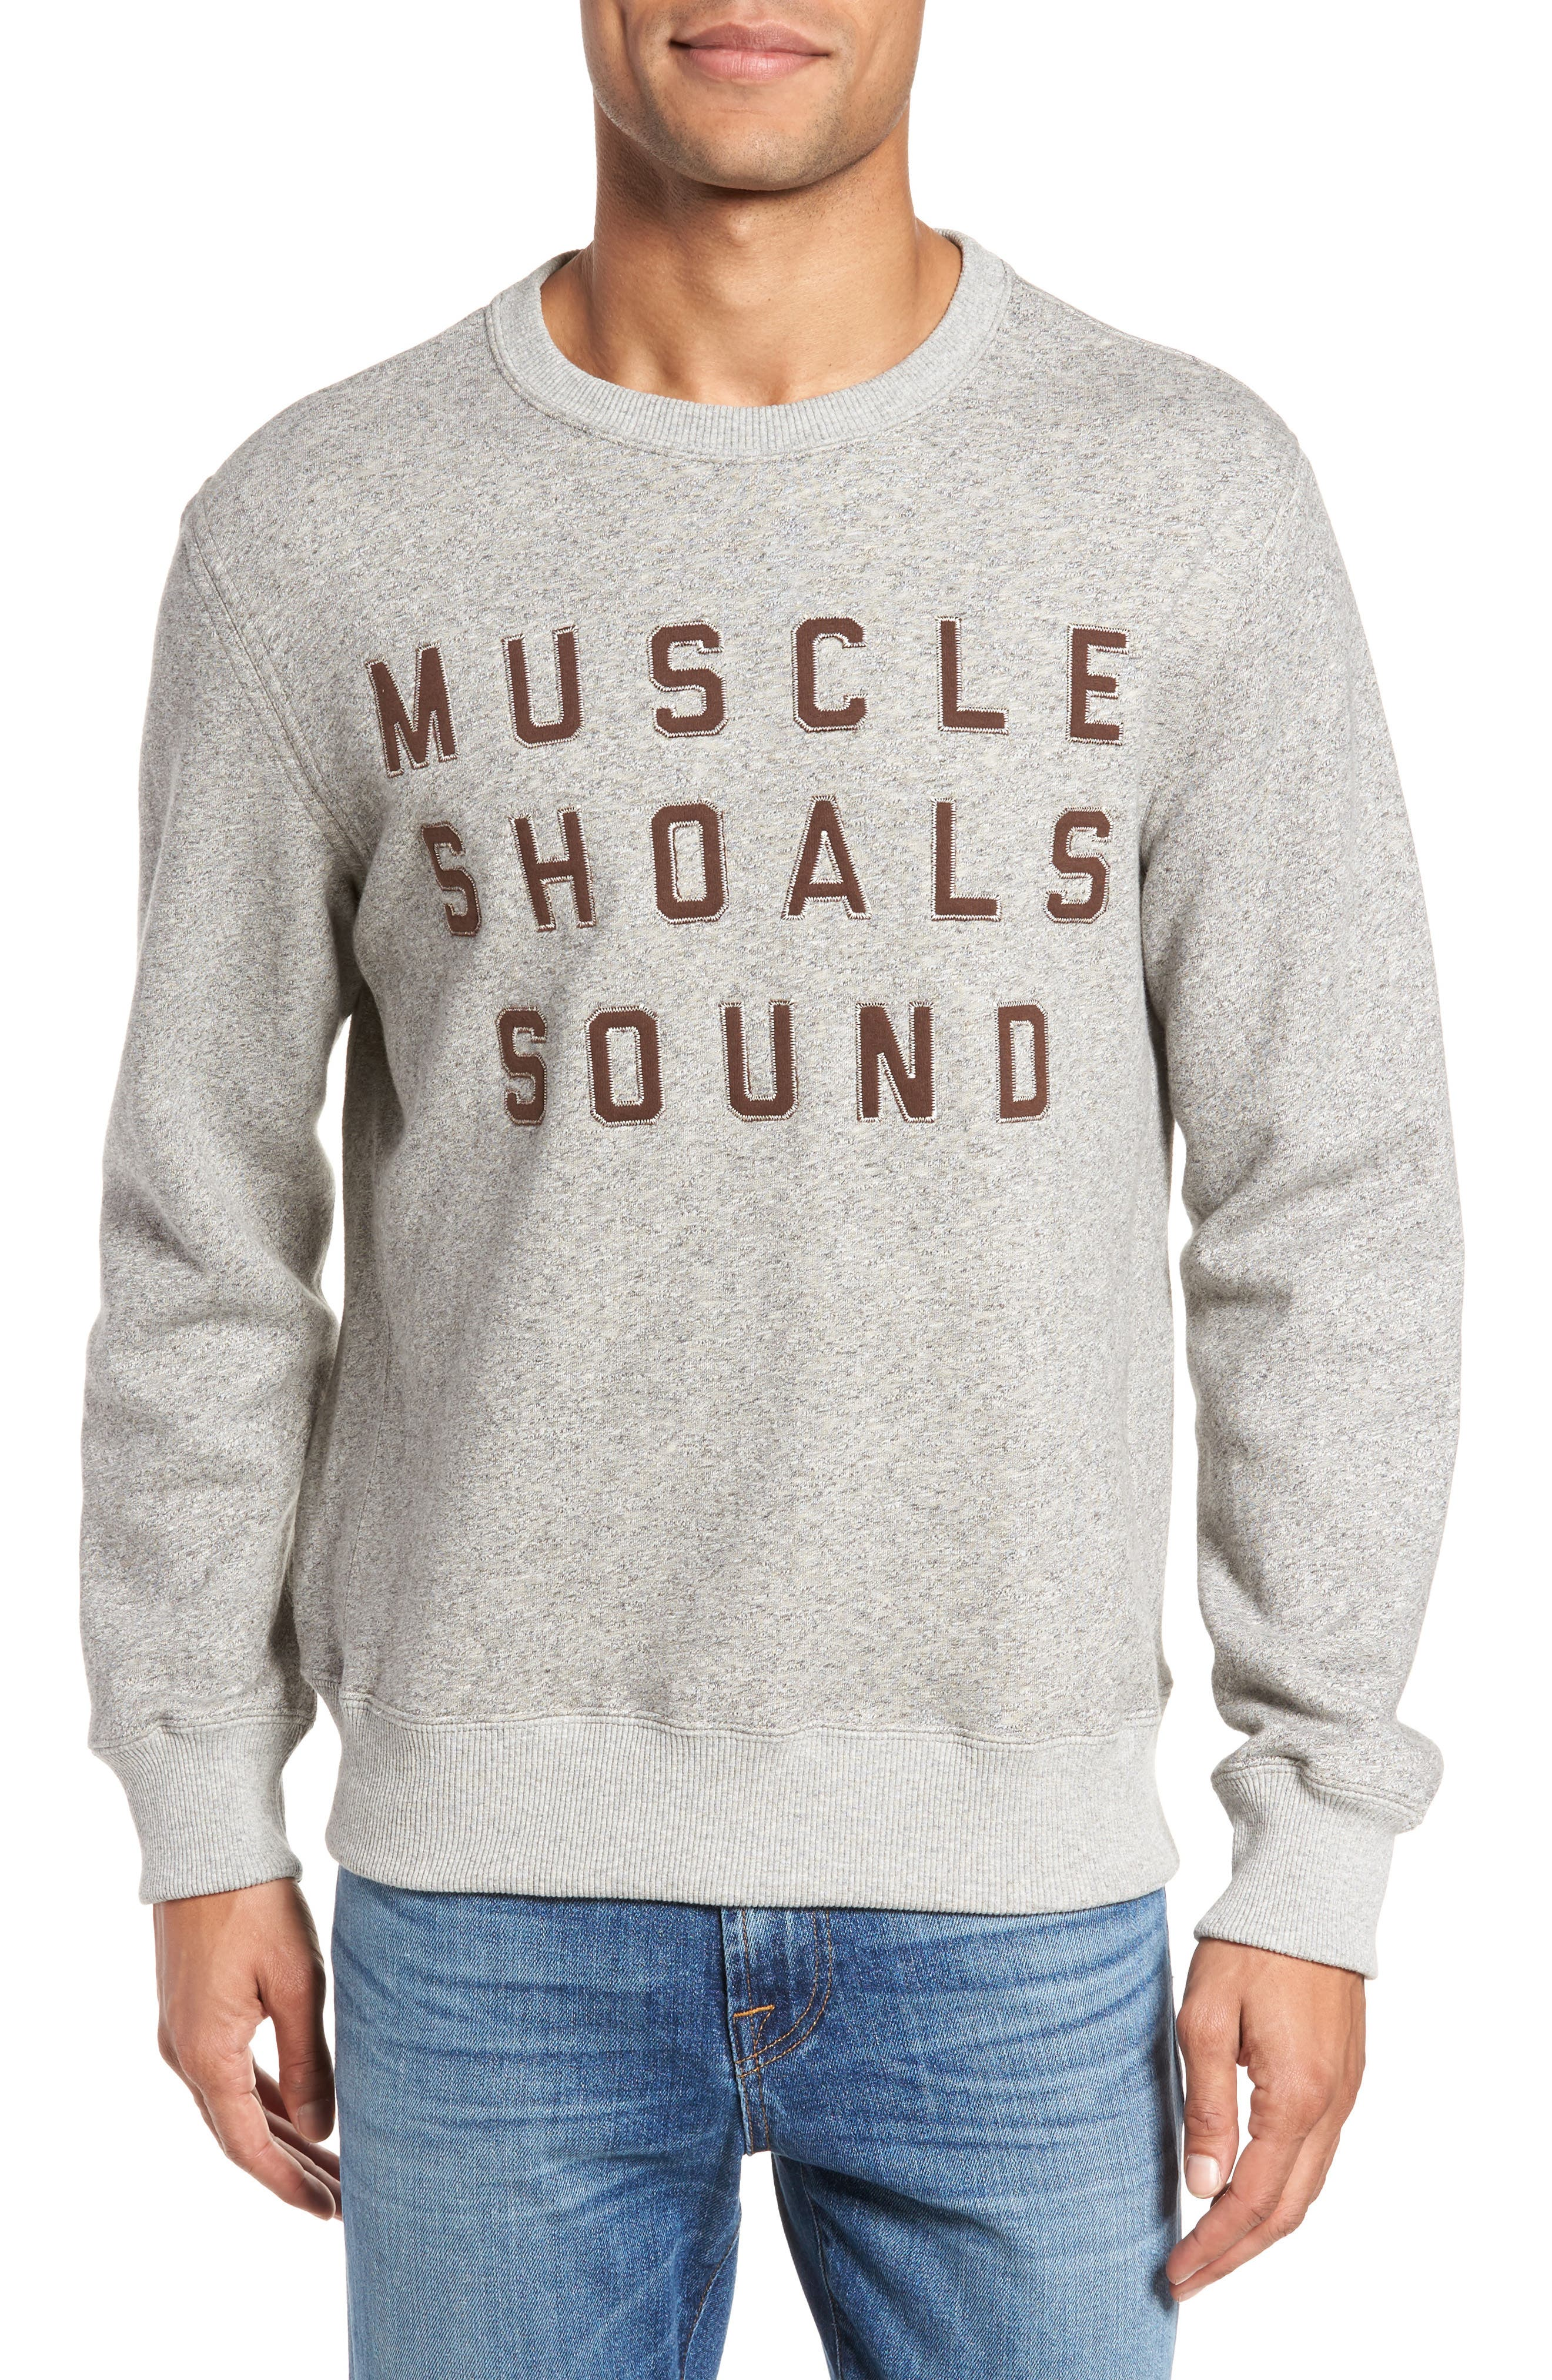 Muscle Shoals Sound Pullover,                         Main,                         color,